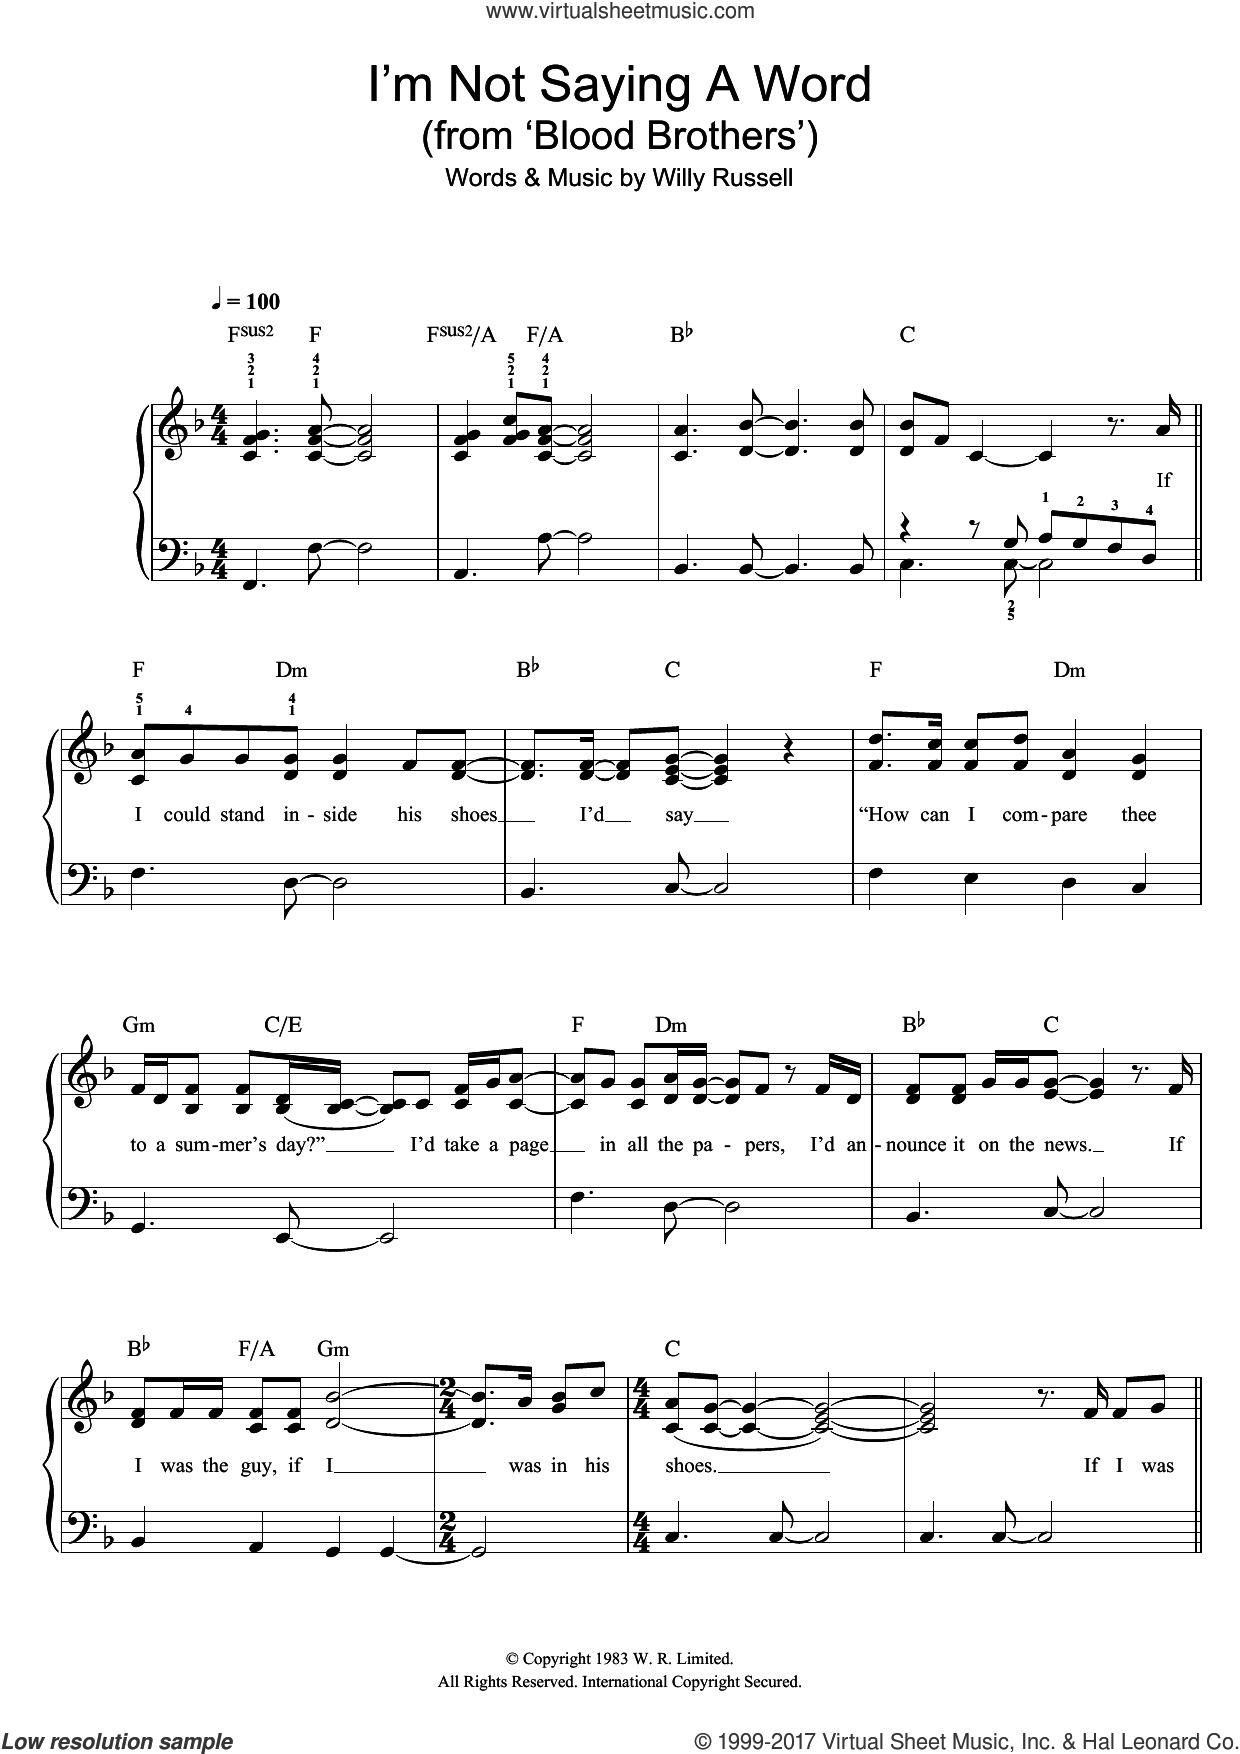 I'm Not Saying A Word (from Blood Brothers) sheet music for piano solo by Willy Russell, easy skill level